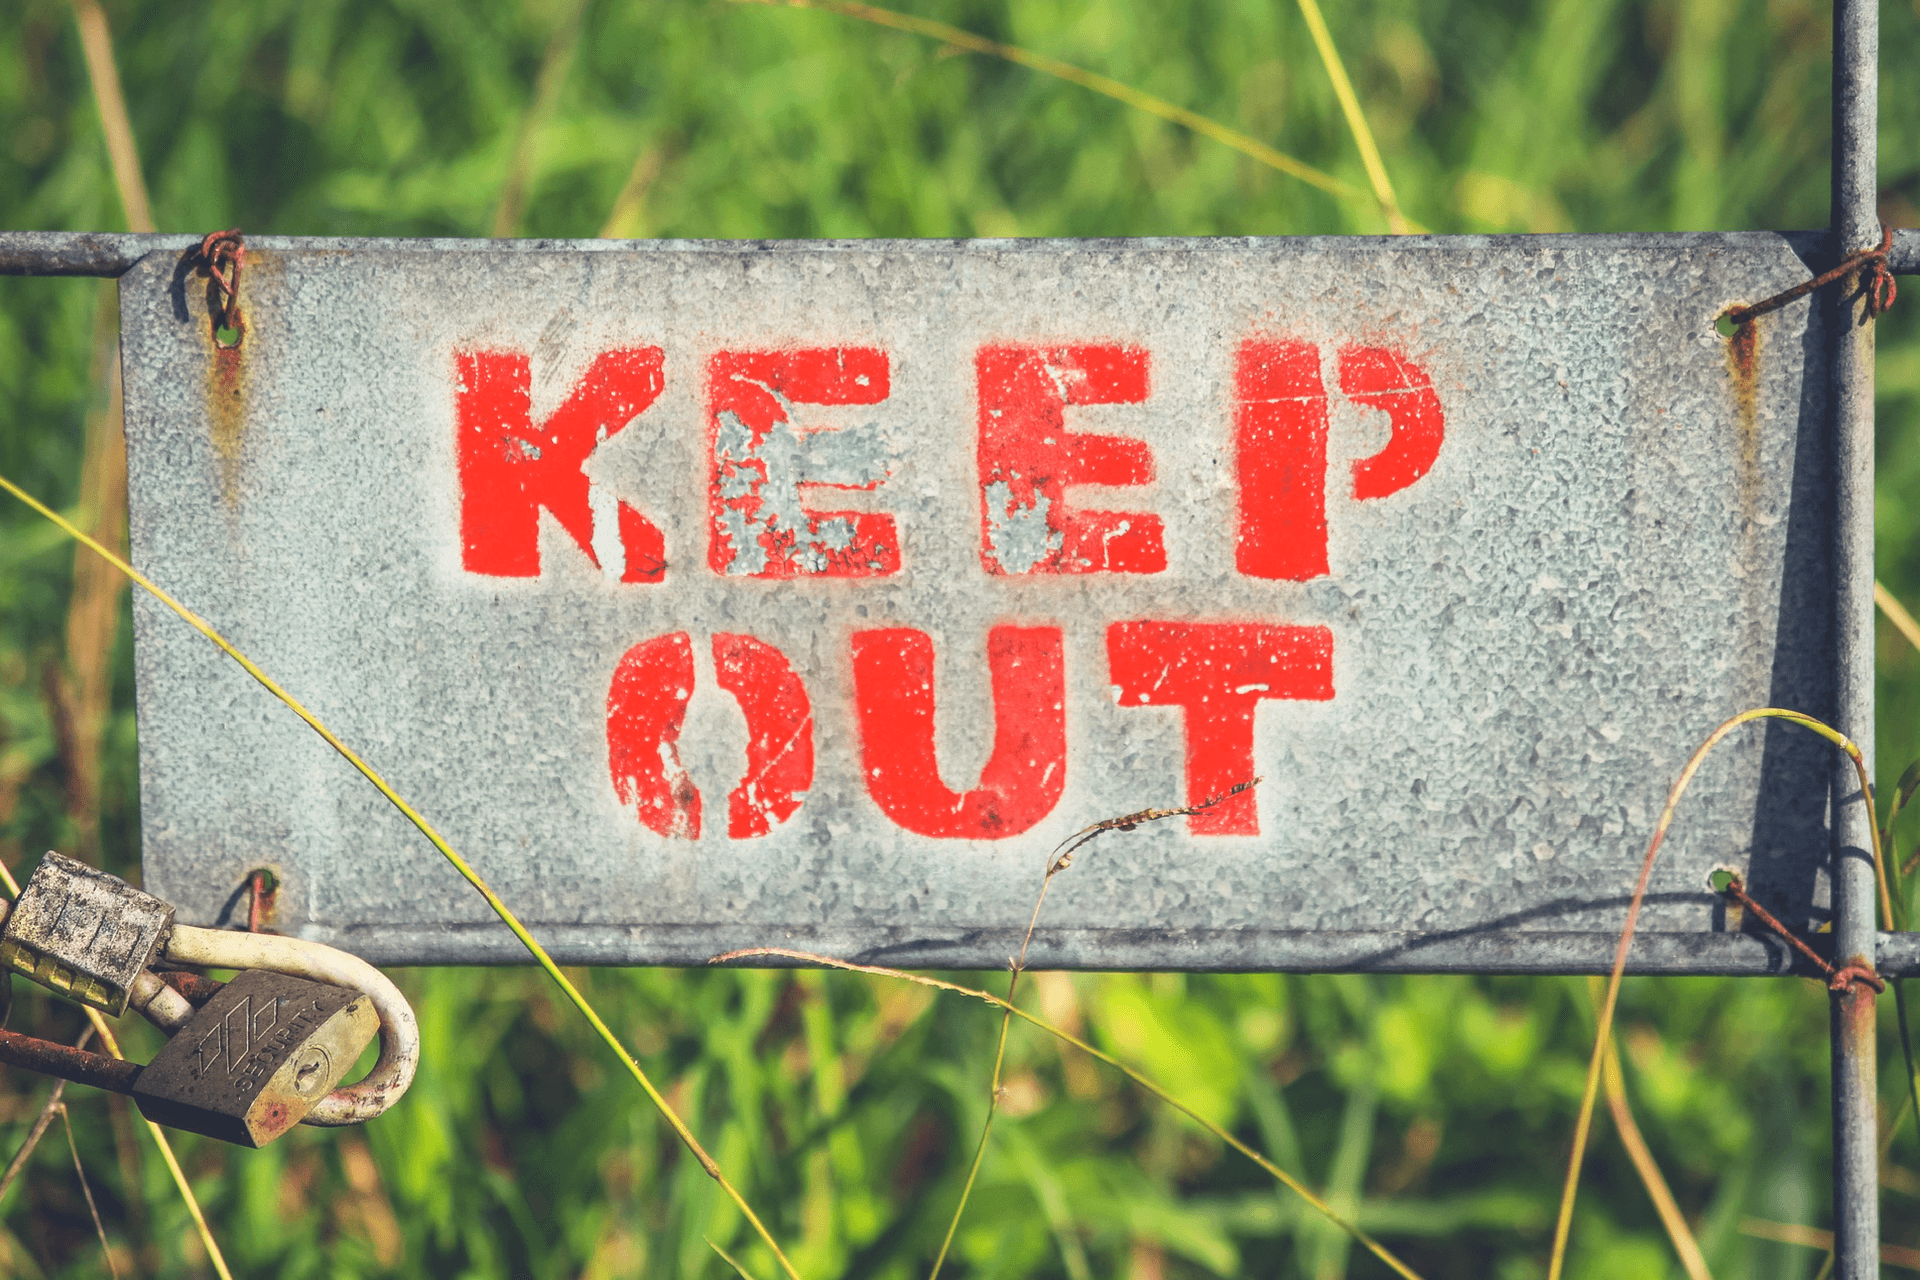 This image displays a keep out sign and portrays relevance to branding and strategic communications for nonprofit fundraising